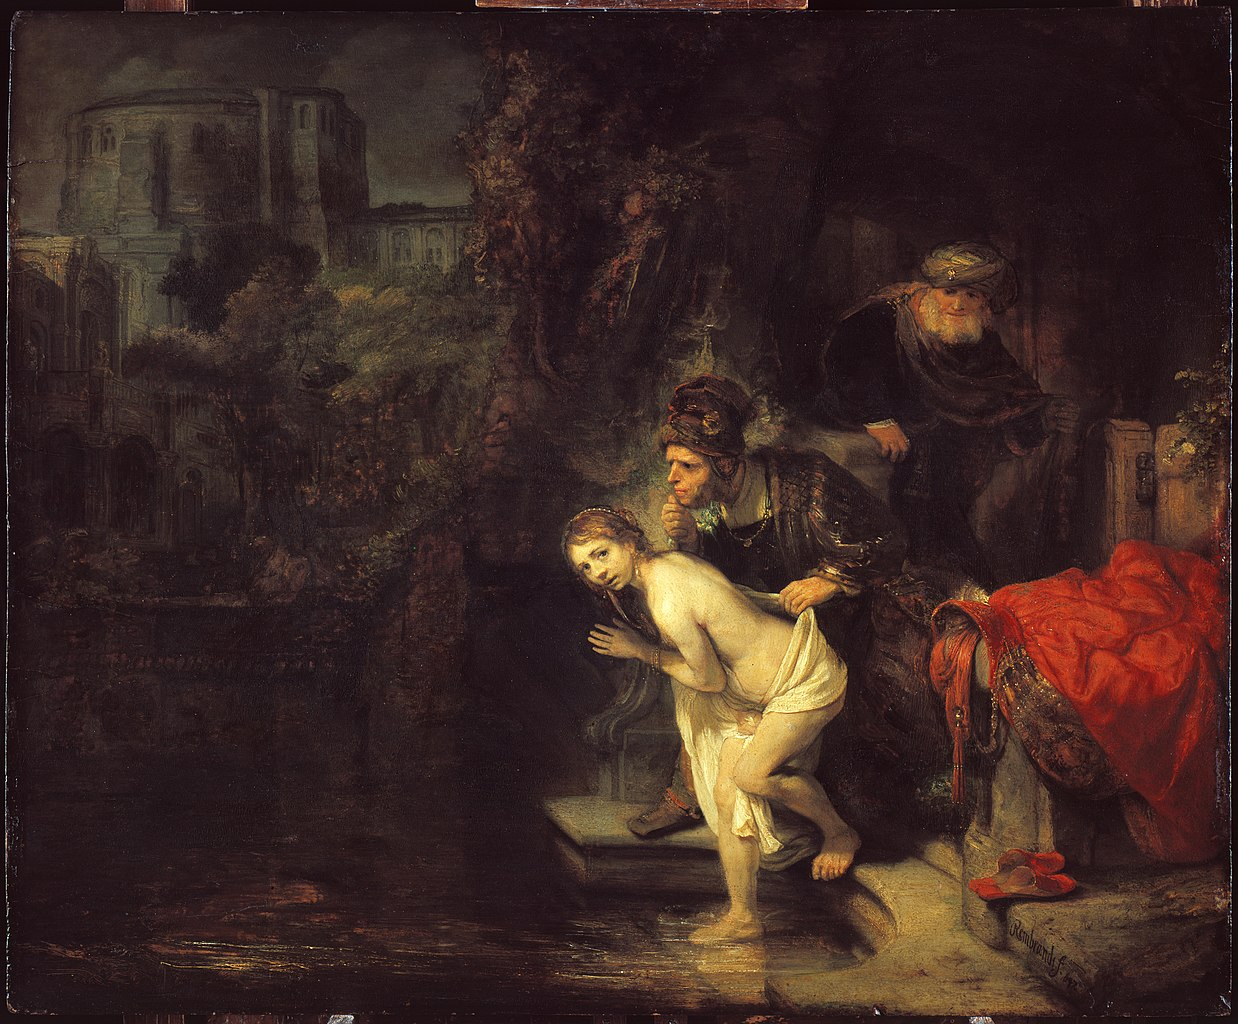 1239px-Rembrandt_-_Susanna_and_the_Elders.jpg